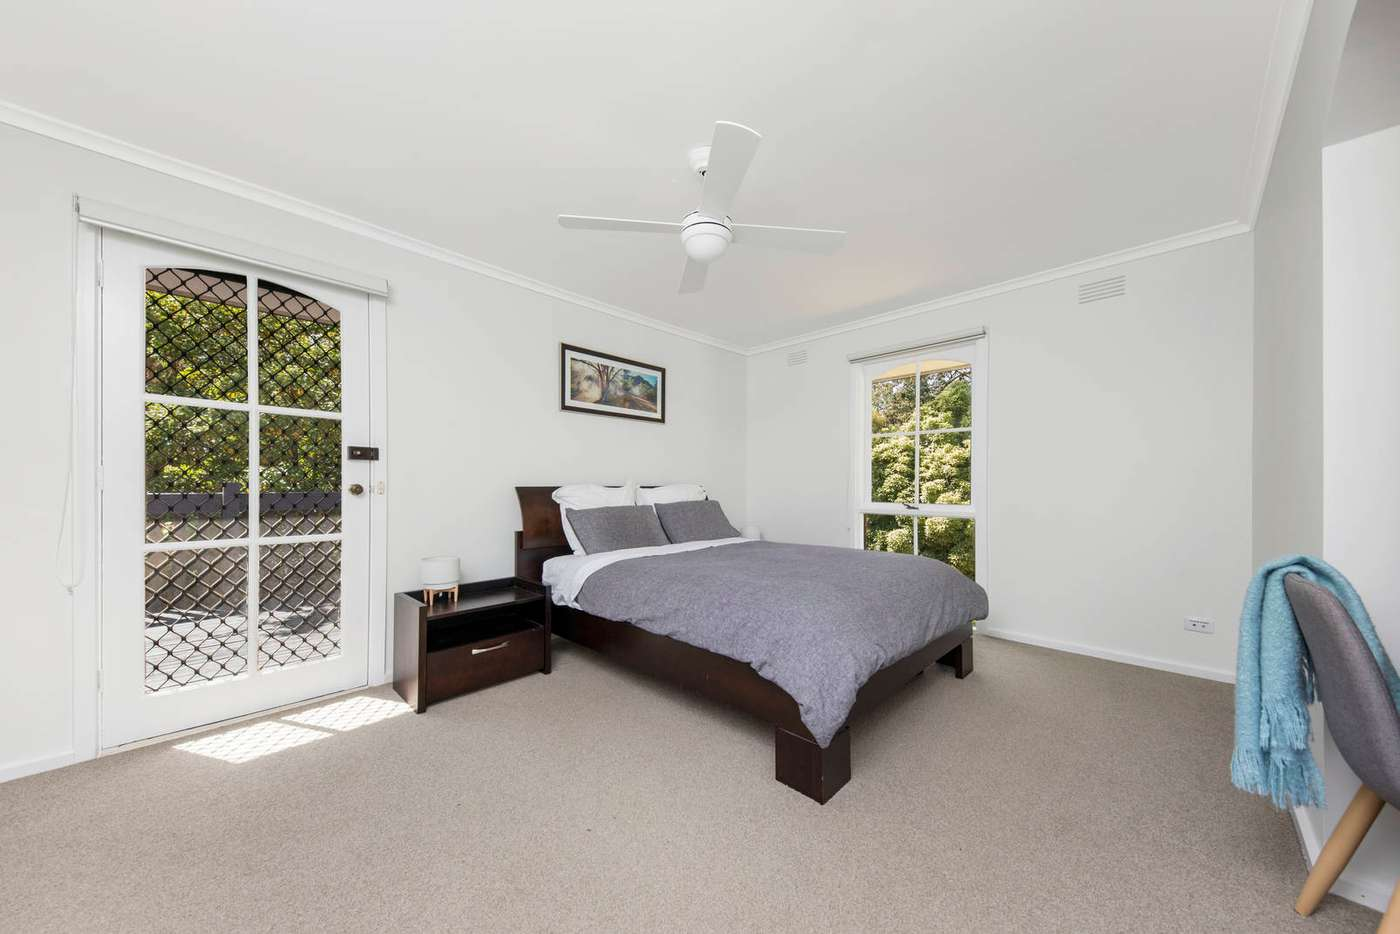 Sixth view of Homely house listing, 52 Marshall Avenue, Macedon VIC 3440